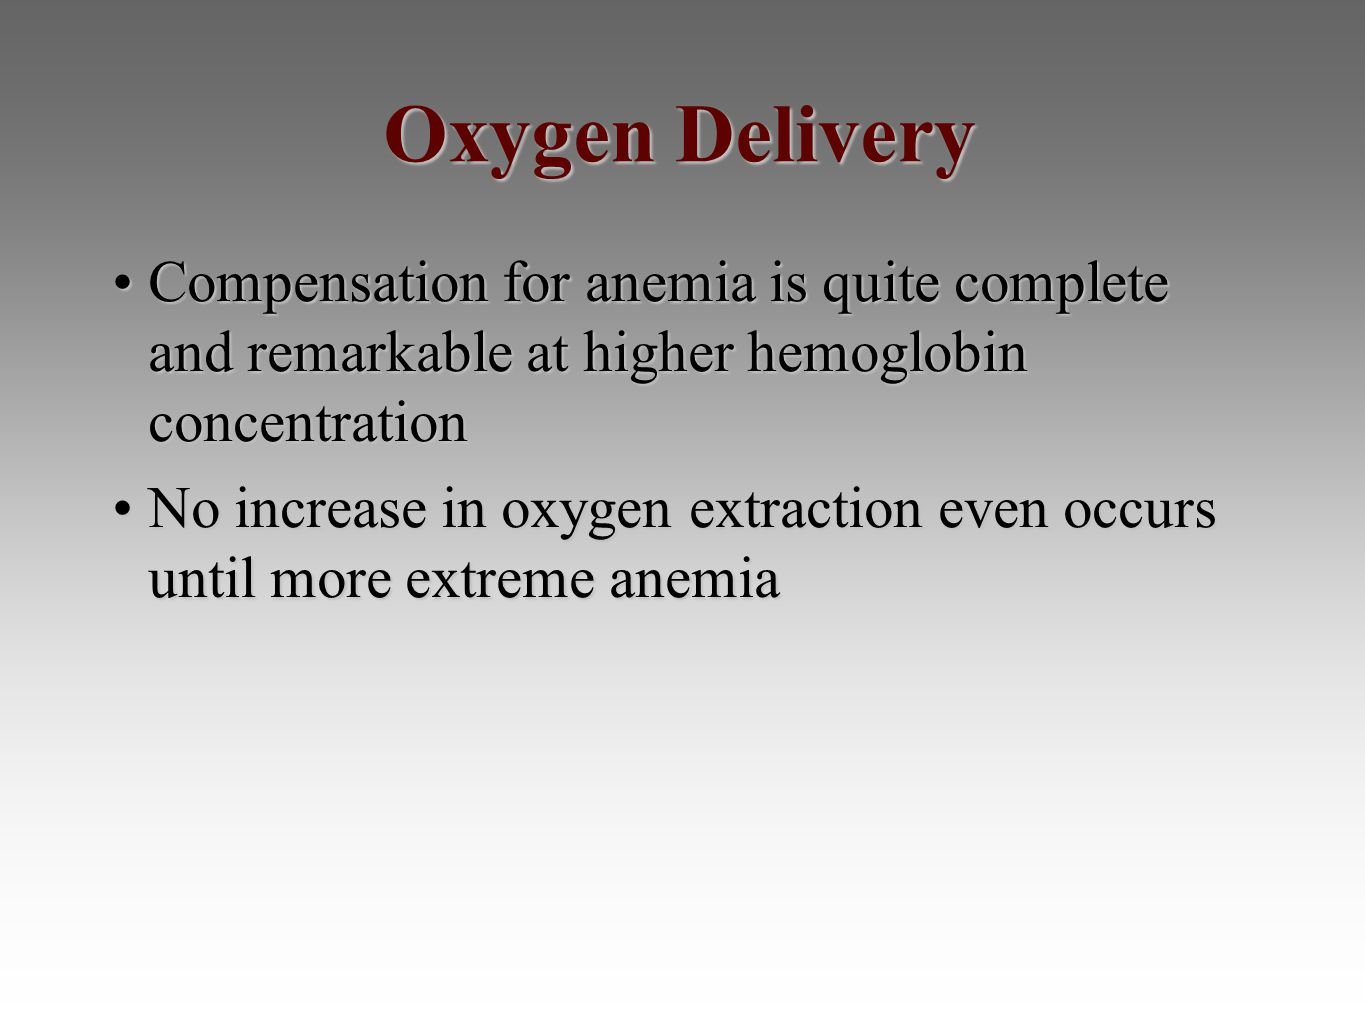 Oxygen Delivery Compensation for anemia is quite complete and remarkable at higher hemoglobin concentrationCompensation for anemia is quite complete and remarkable at higher hemoglobin concentration No increase in oxygen extraction even occurs until more extreme anemiaNo increase in oxygen extraction even occurs until more extreme anemia